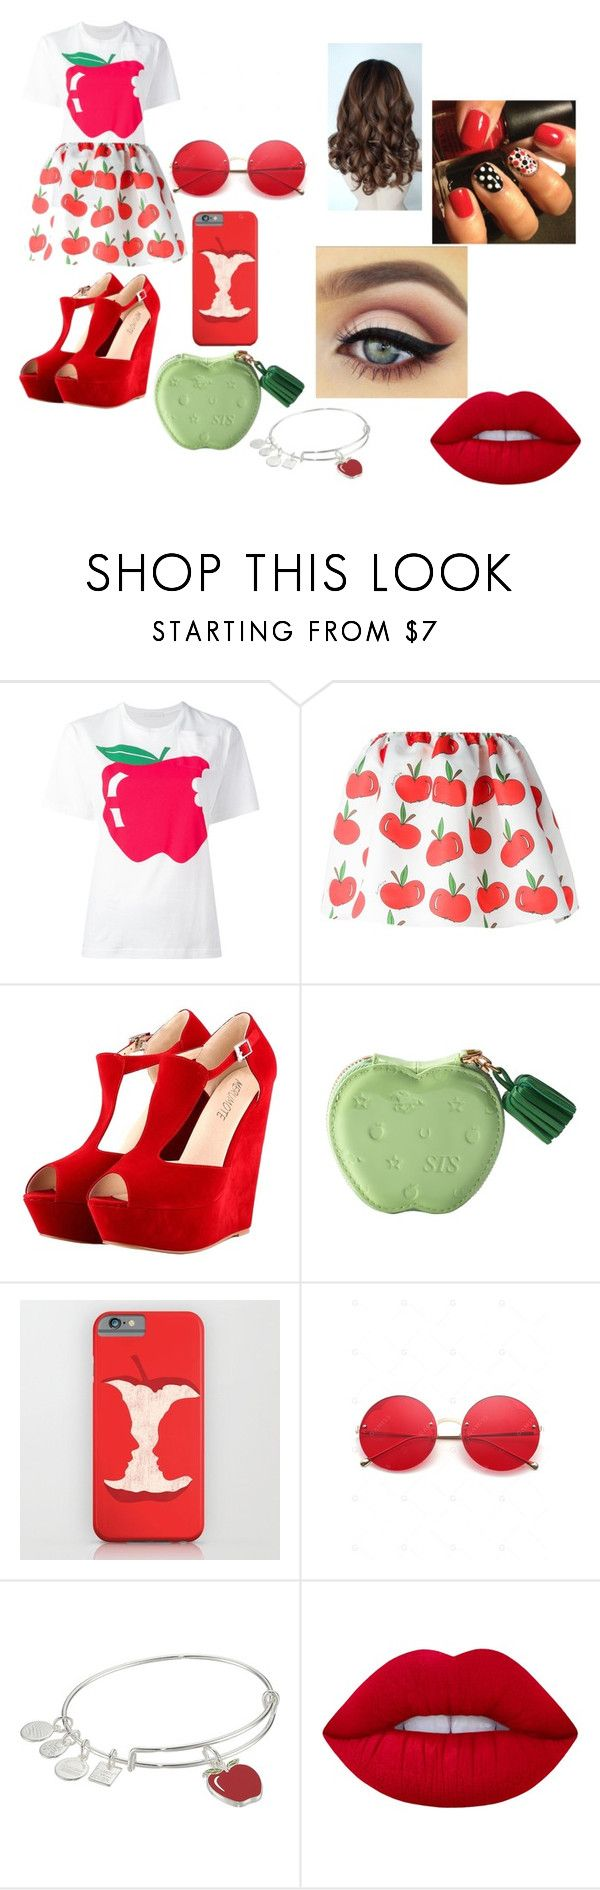 """Apple"" by lauren-paul-sets ❤ liked on Polyvore featuring Peter Jensen, Au Jour Le Jour, Alex and Ani and Lime Crime"